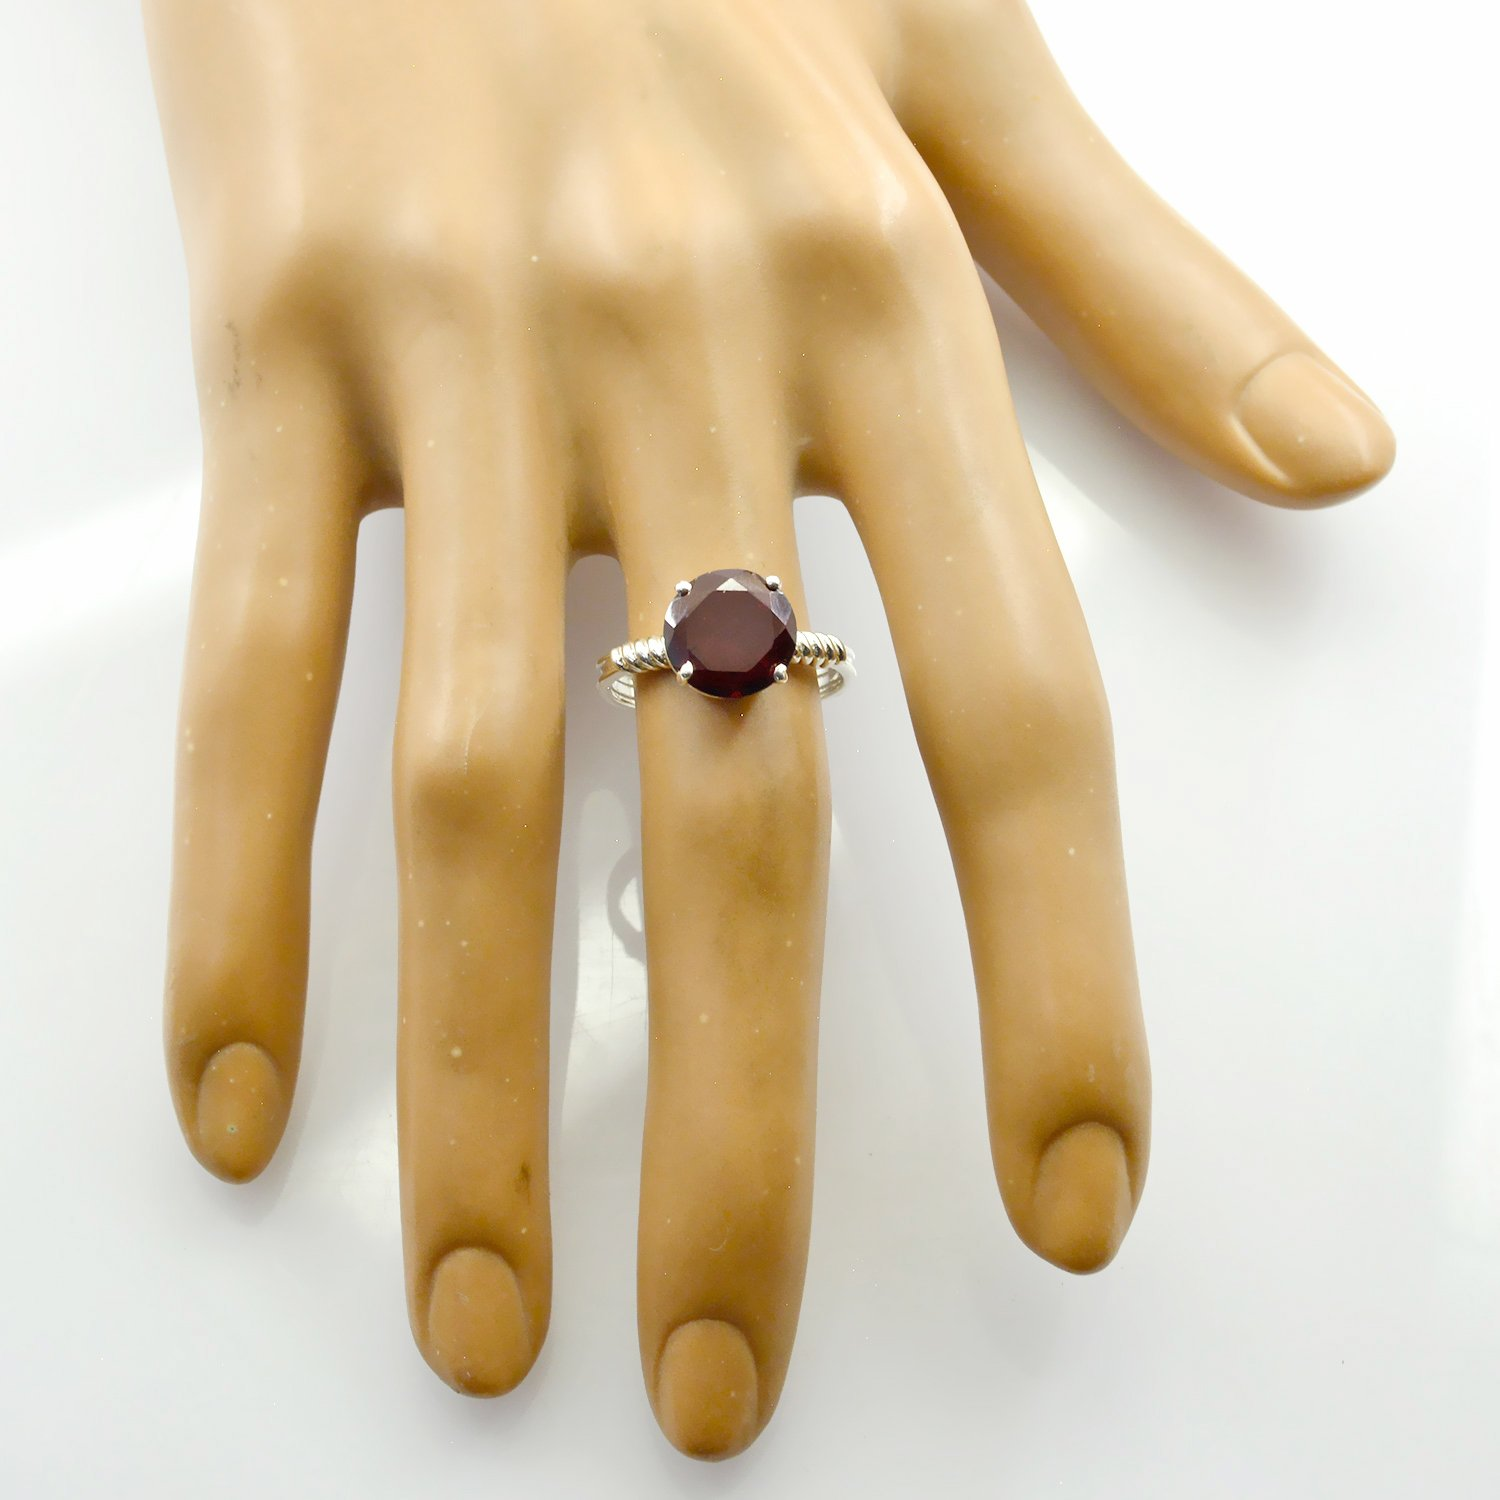 Nice Gemstone Round Faceted Garnet Rings Sterling Silver Red Garnet Nice Gemstone Ring suppiler Jewelry top Selling Items Gift for Independence Antique